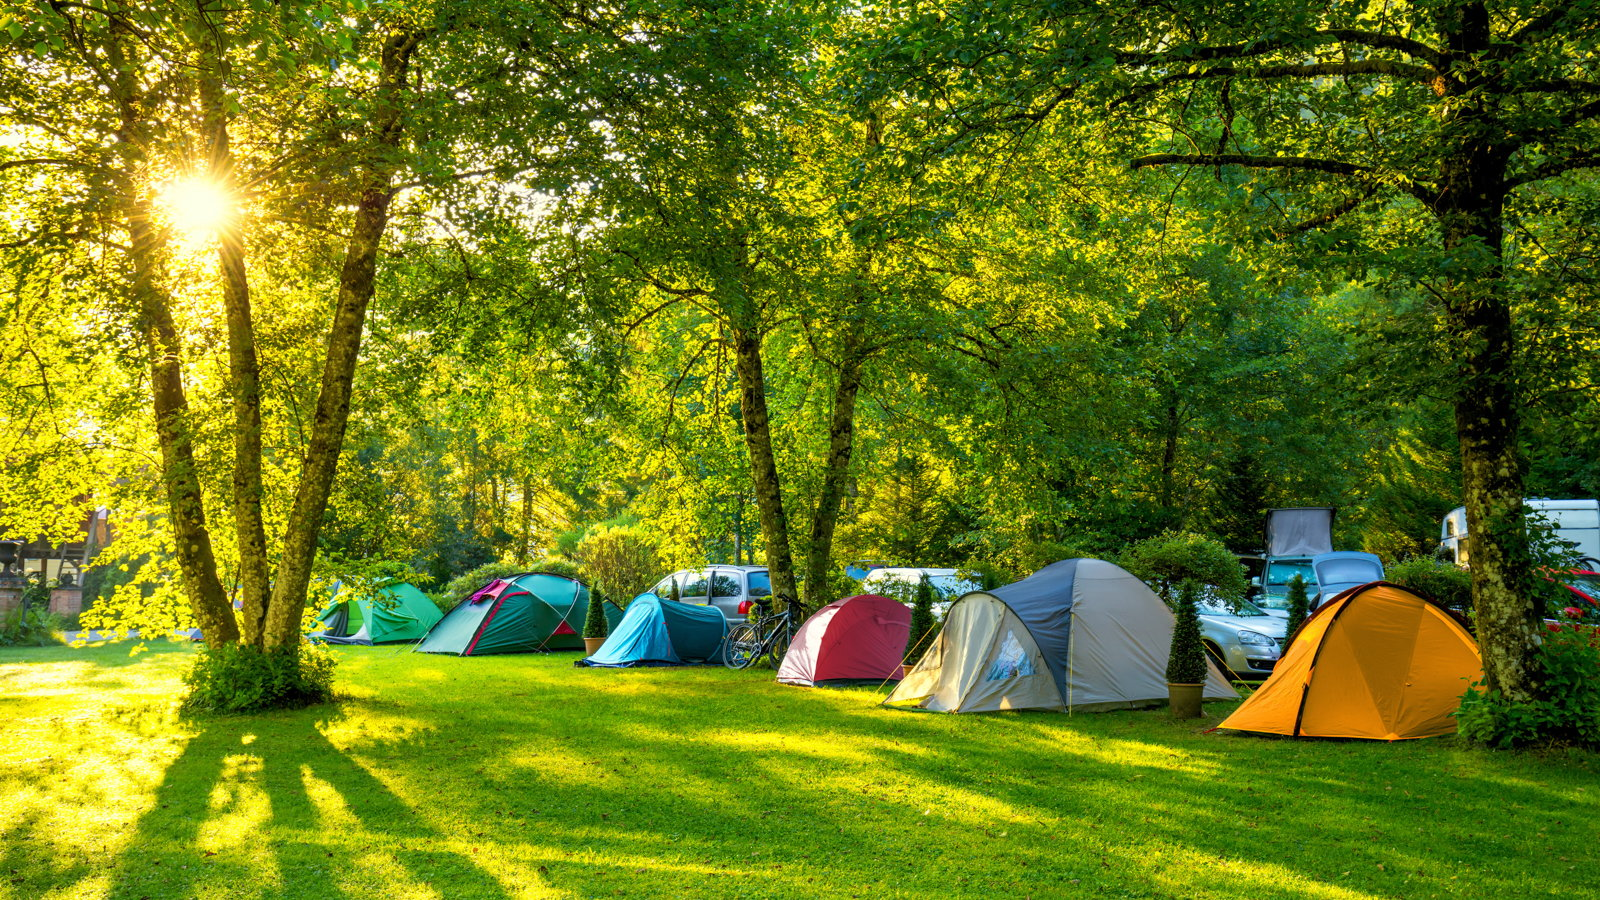 campground with tents